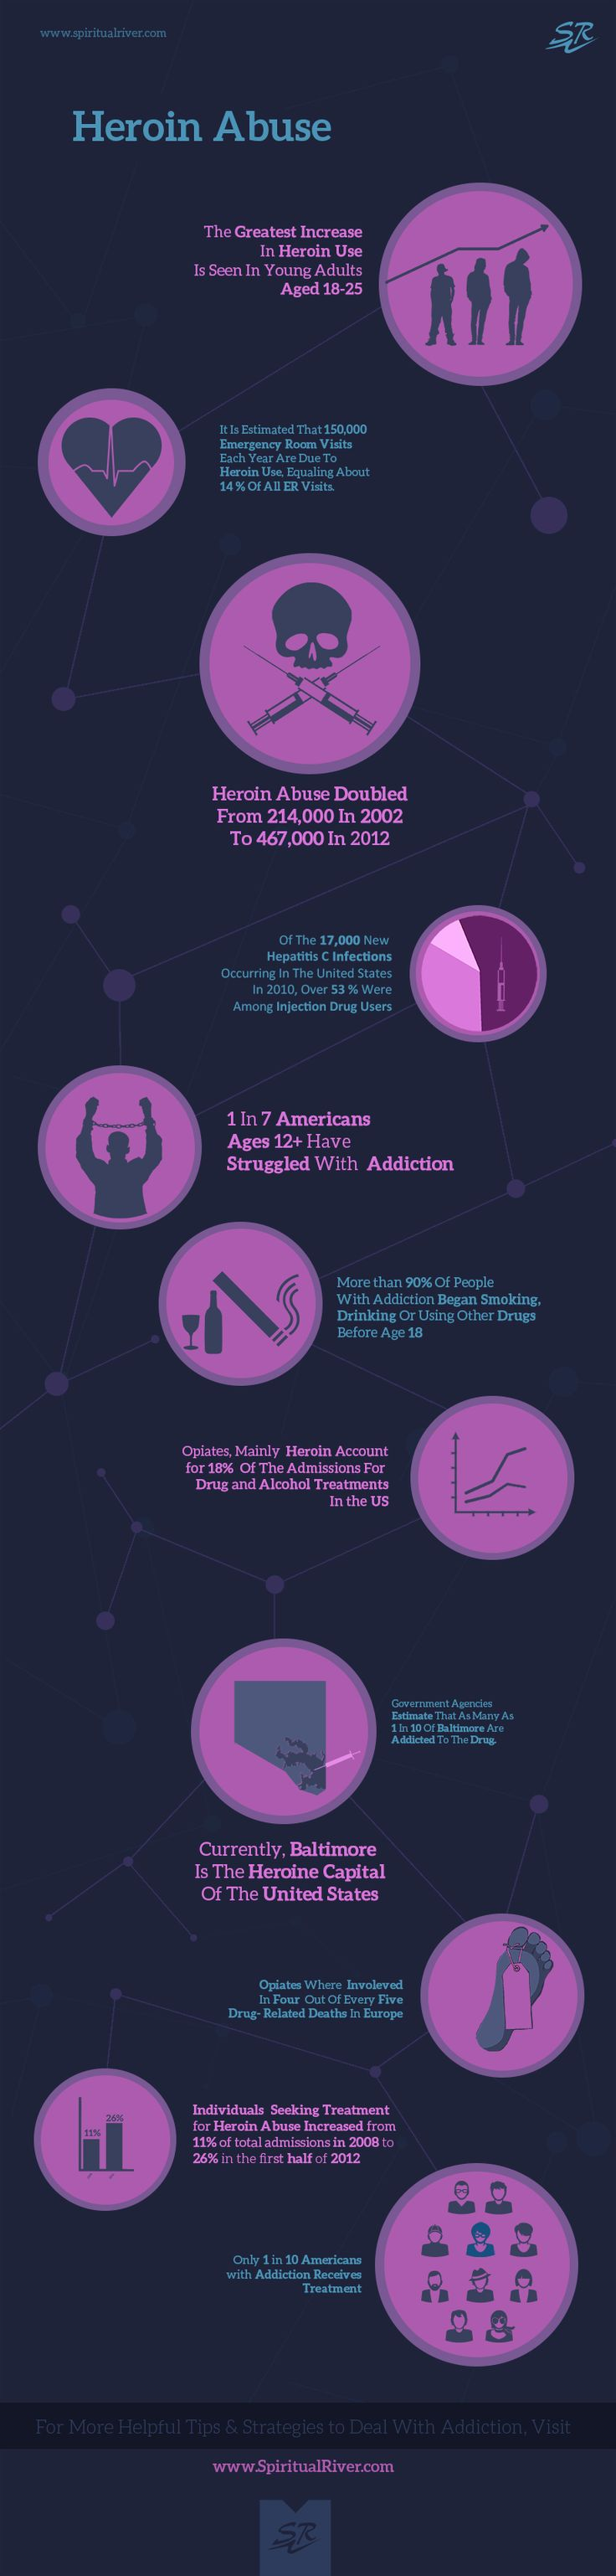 Heroin Addiction Abuse Infographic